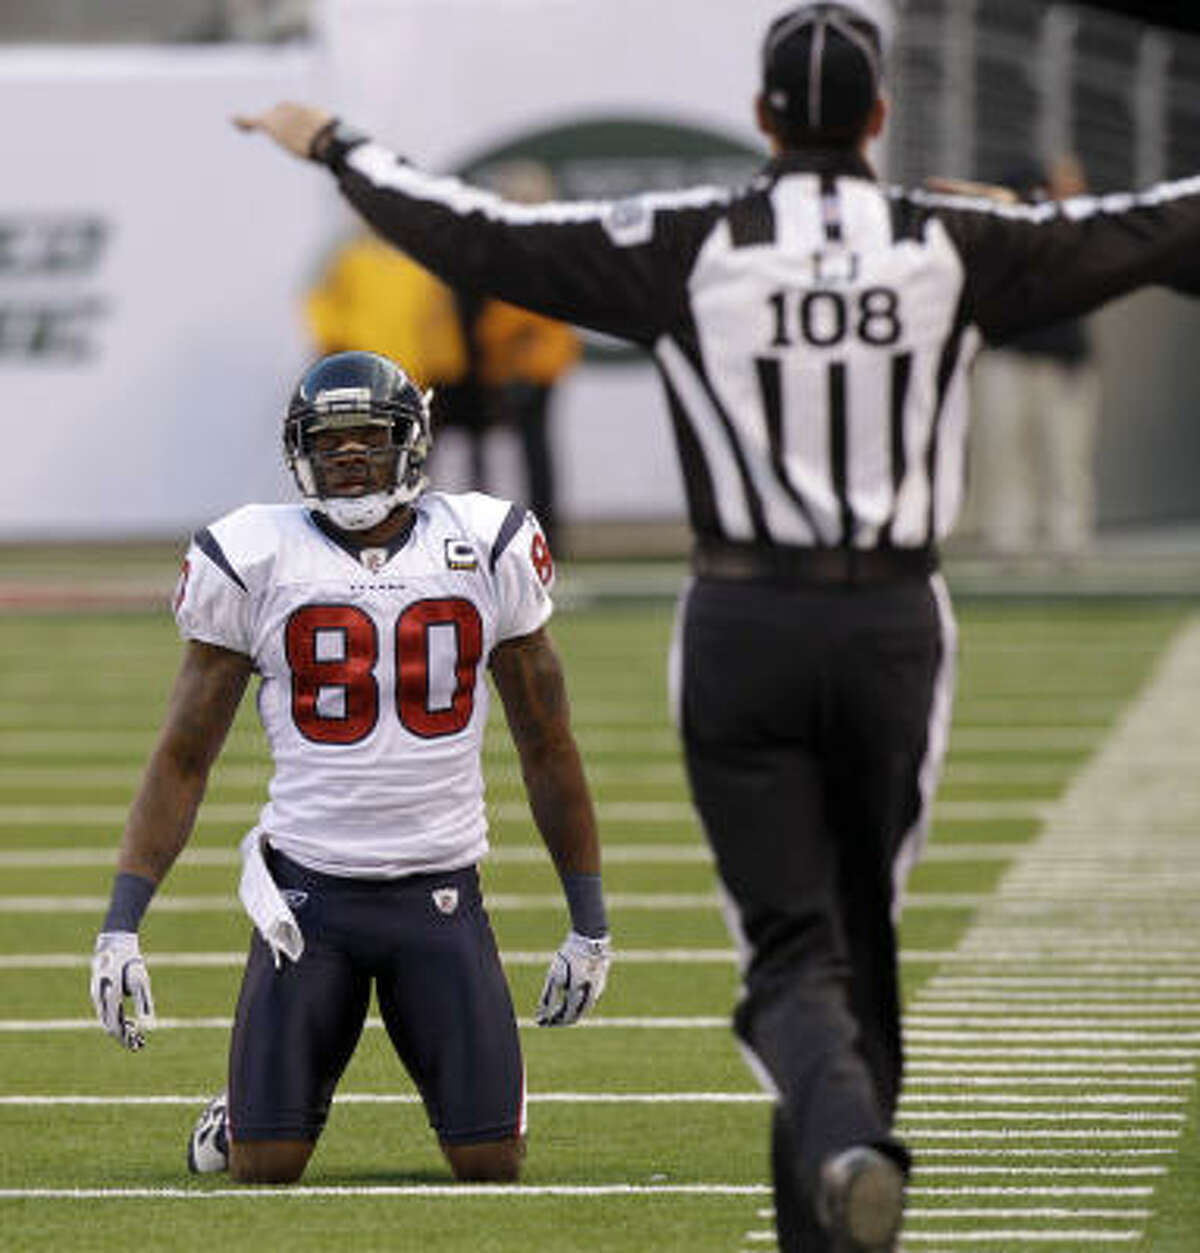 Andre Johnson (80) feels the heat as the Texans hope to steer the ship in a winning direction.